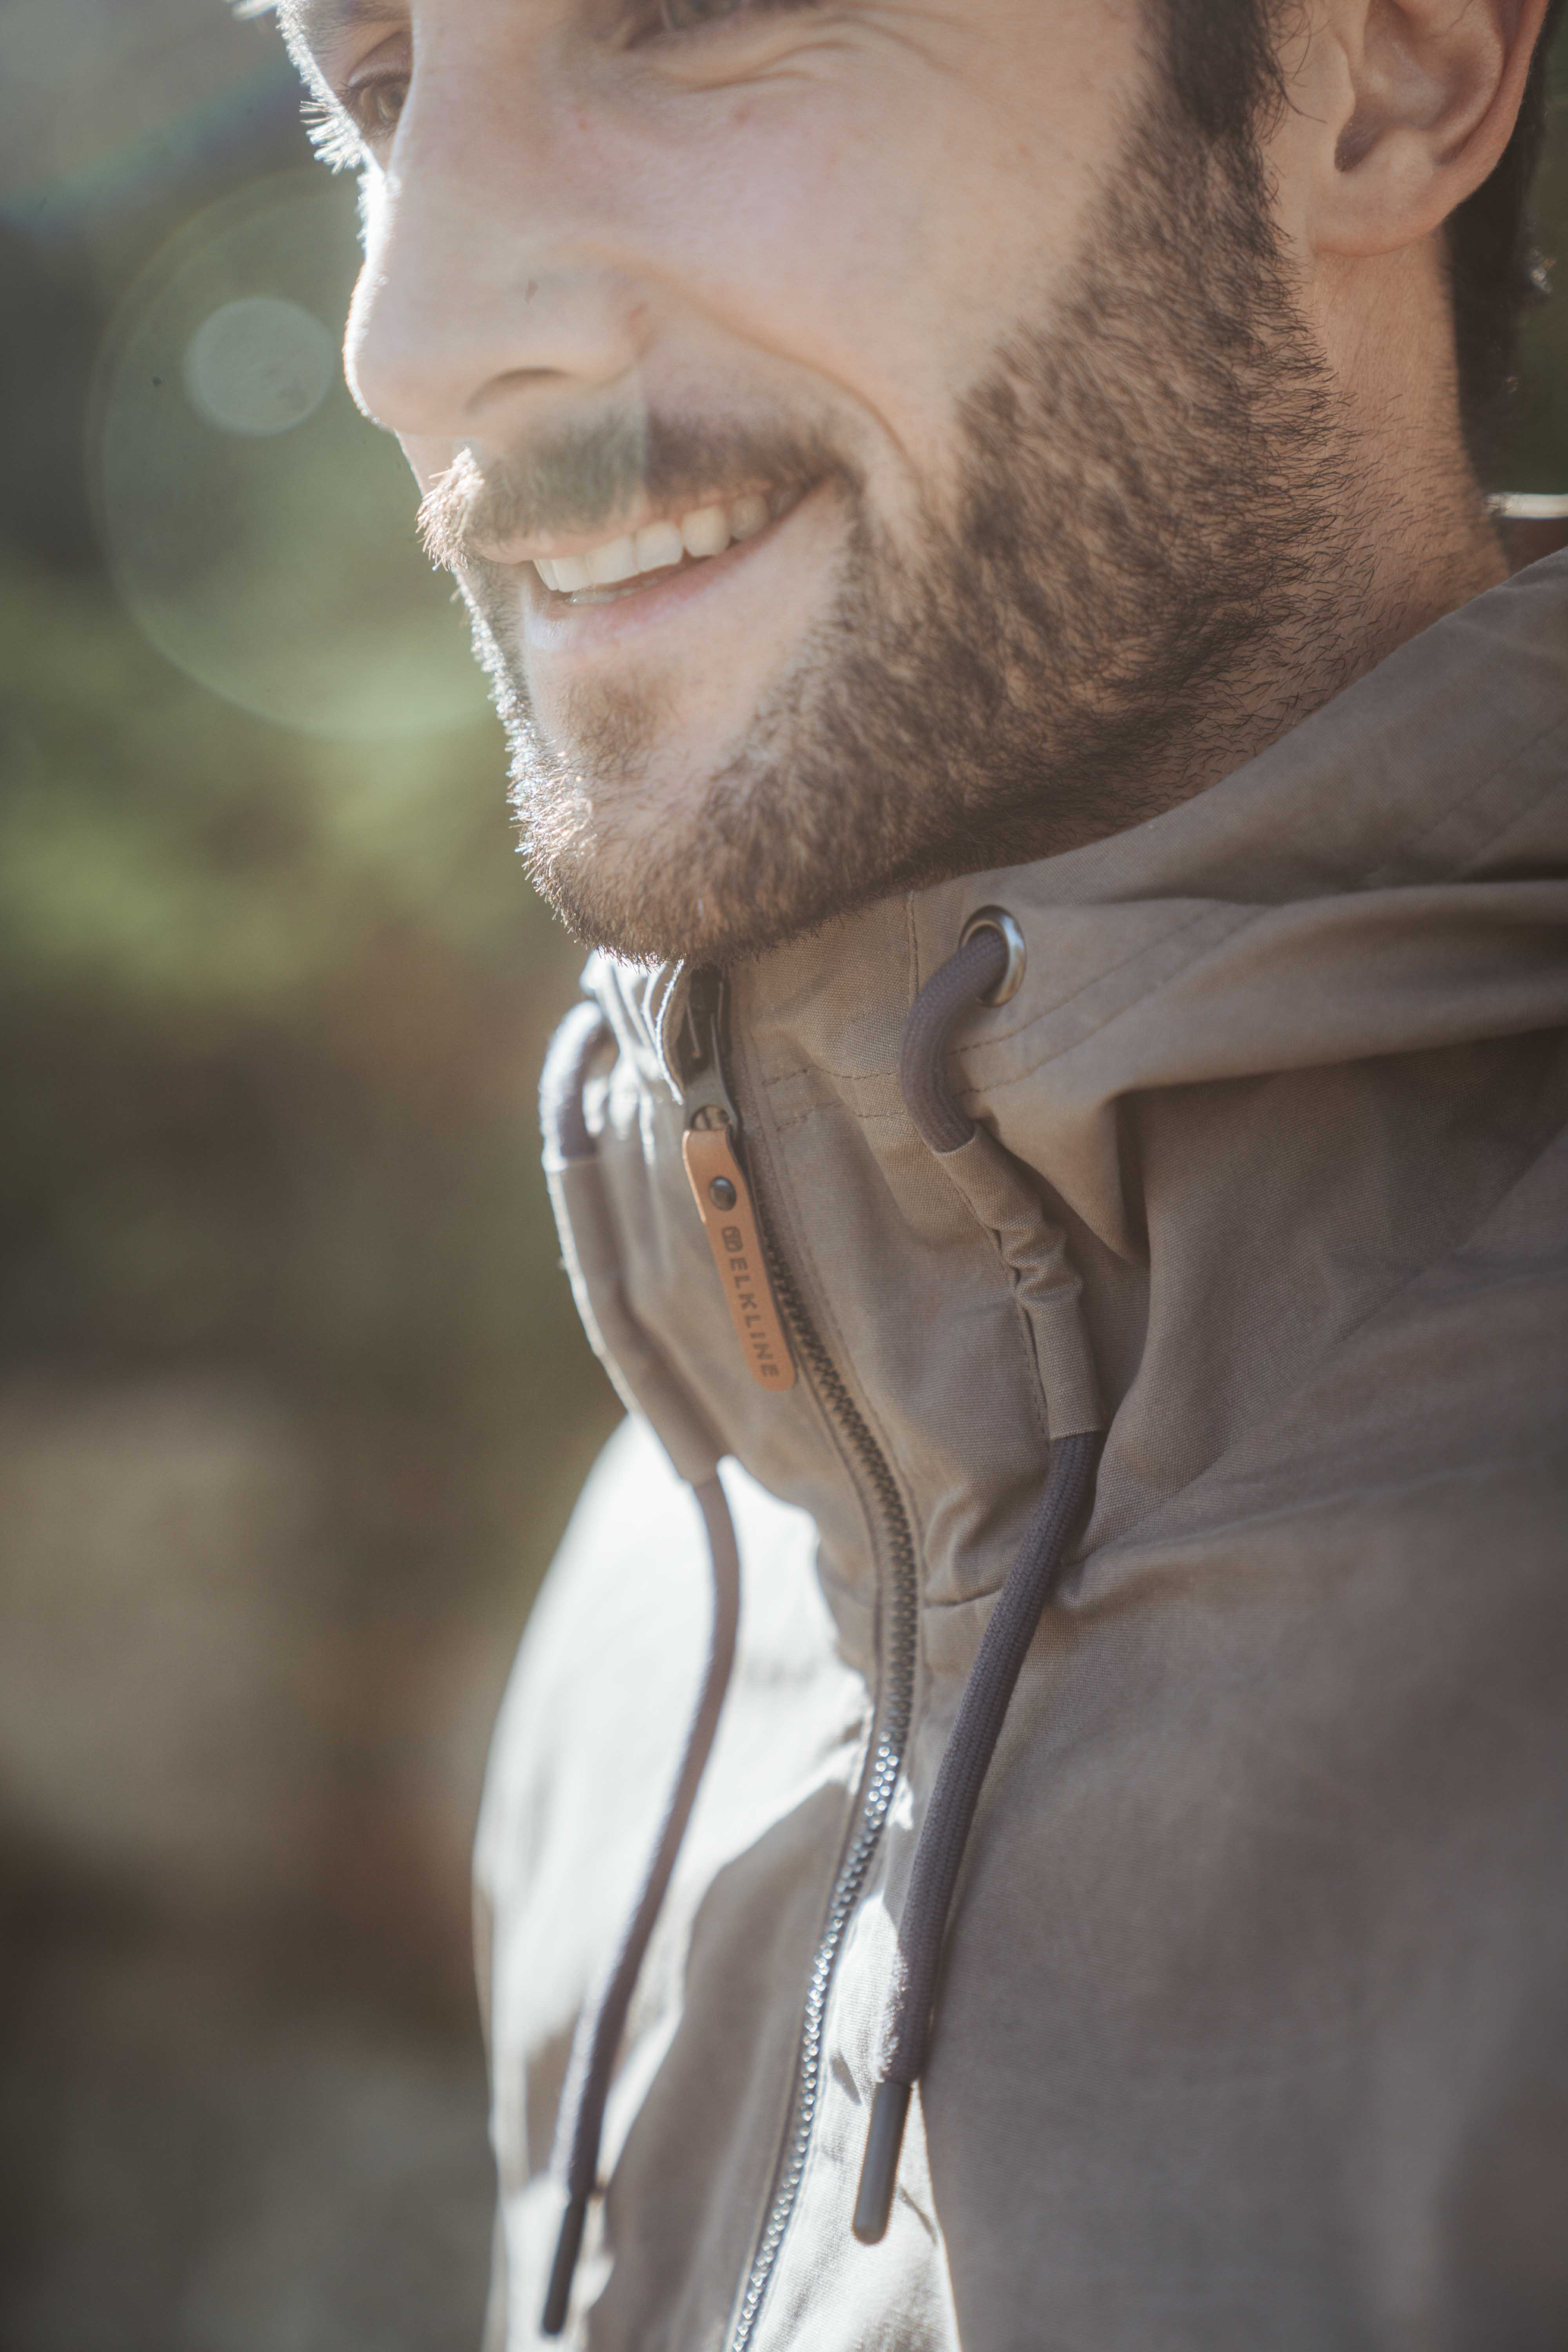 Man with beard smiling wearing a brown jacket by Elkline